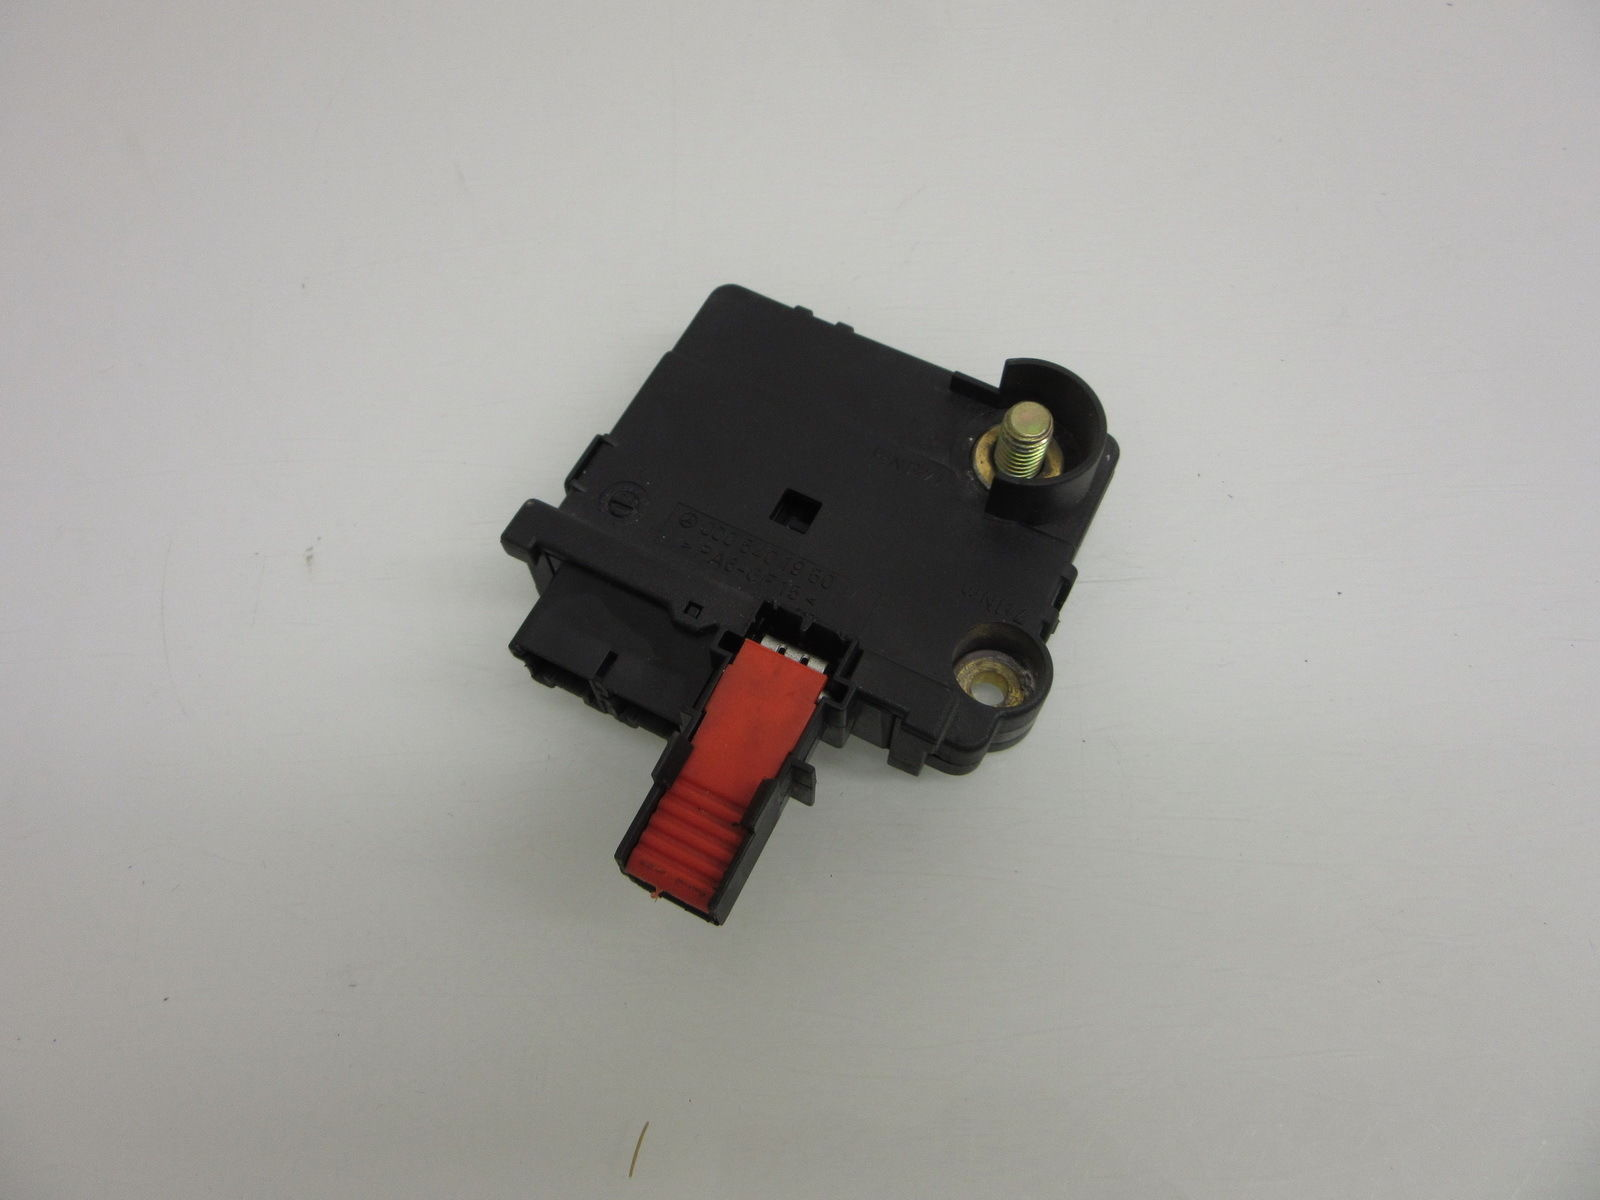 3b9d4afe ca22 4c86 9487 7495077dfee2 00 06 mercedes w220 s500 s600 rear junction battery fuse box battery fuse block at bakdesigns.co